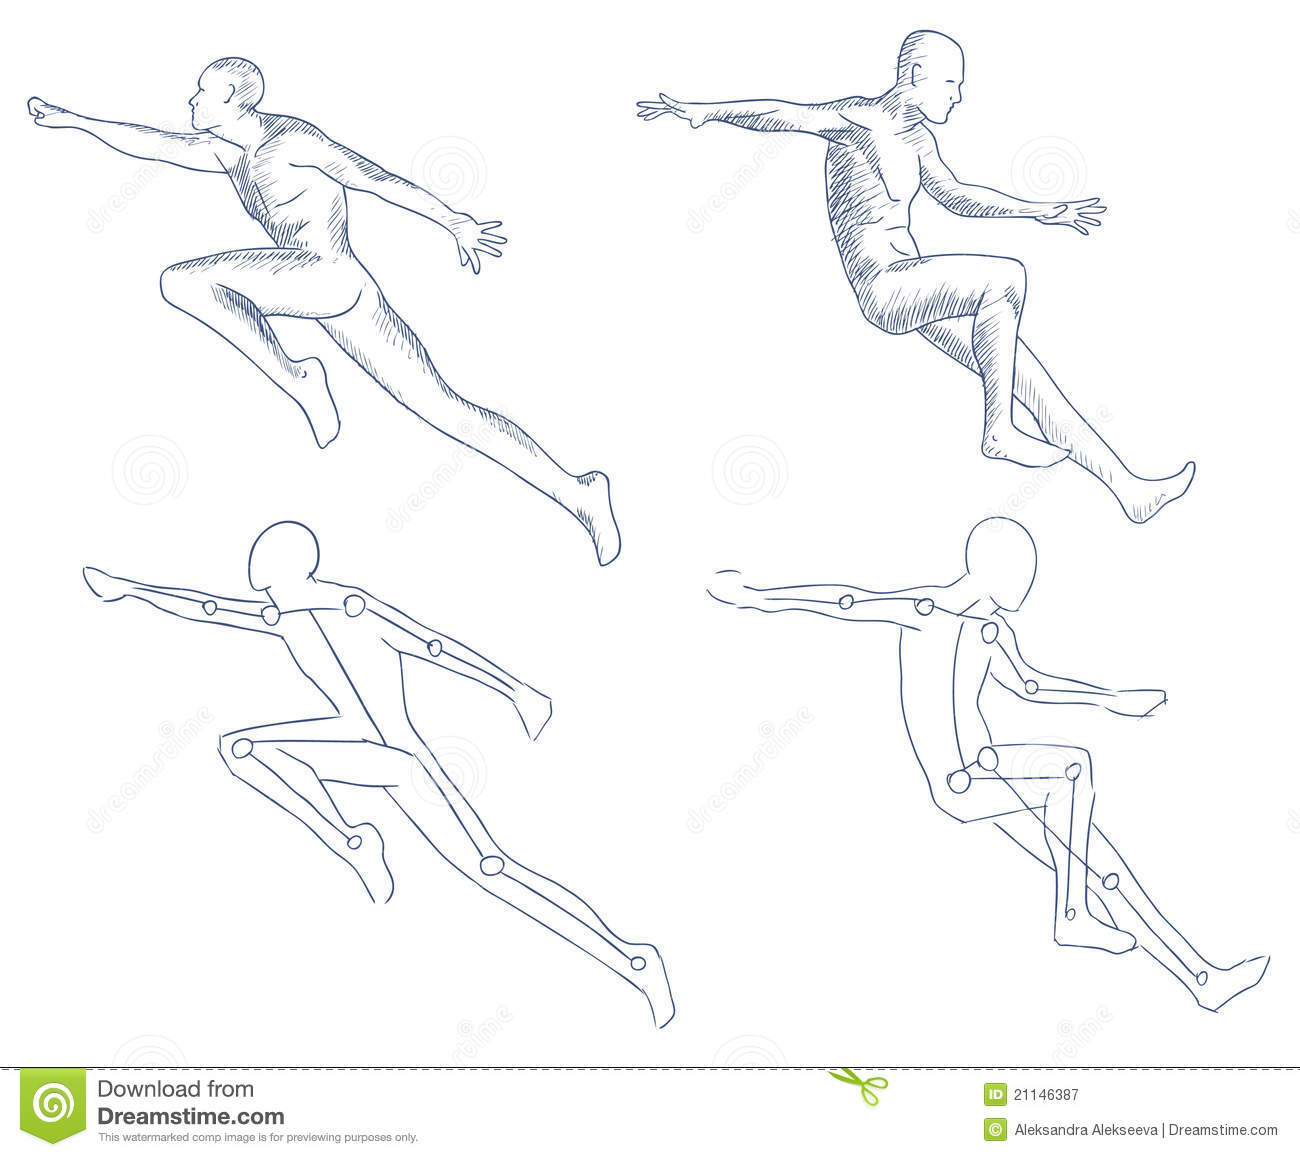 how to draw a person in motion